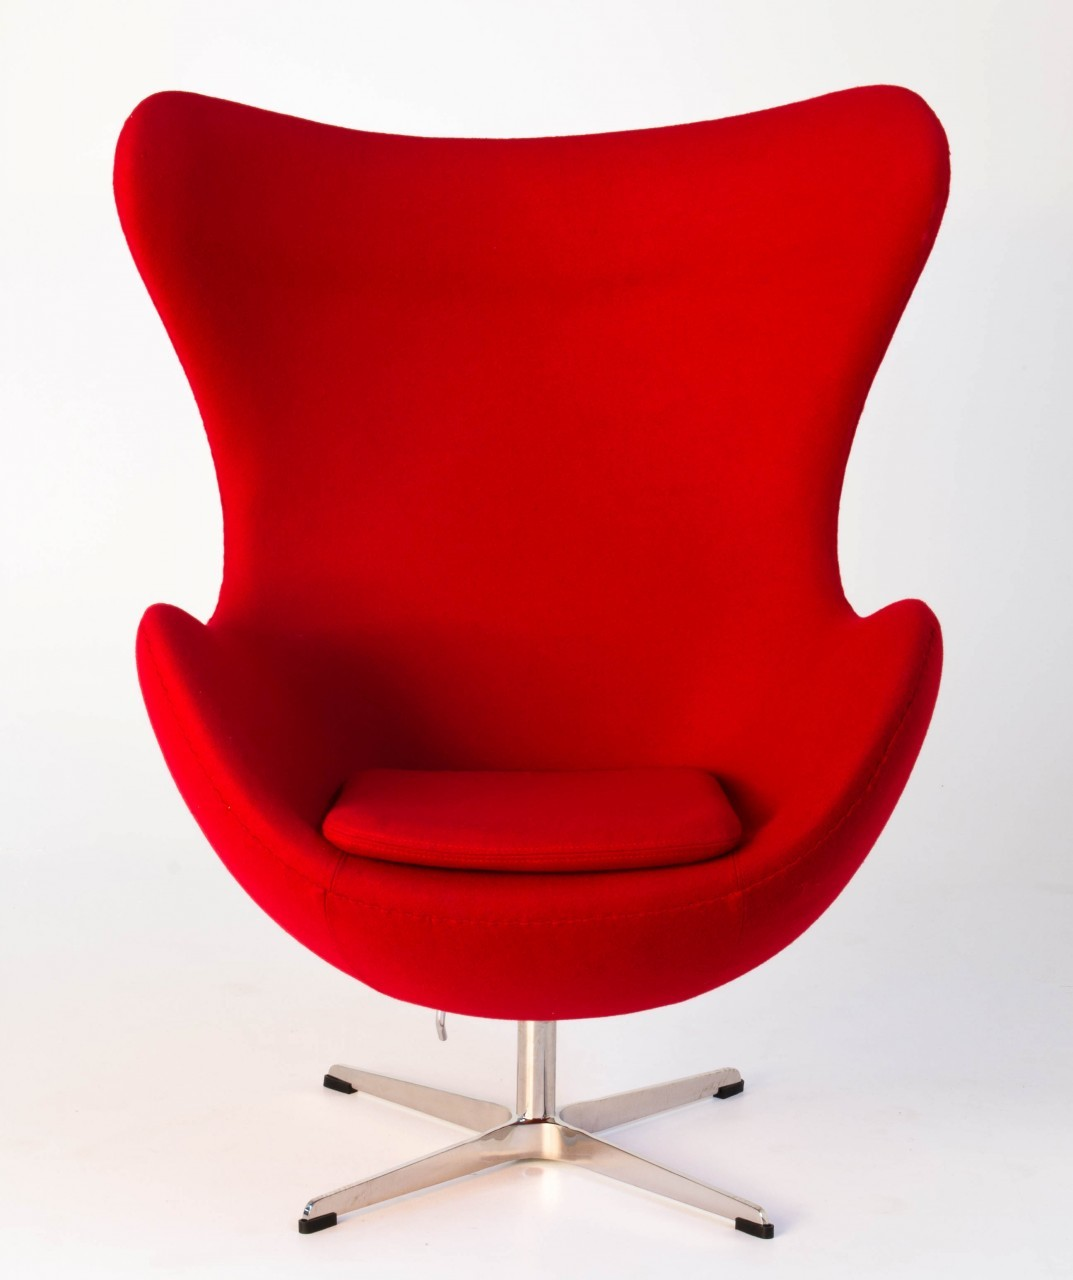 Replica arne jacobsen egg chair red for Arne jacobsen stehlampe replica